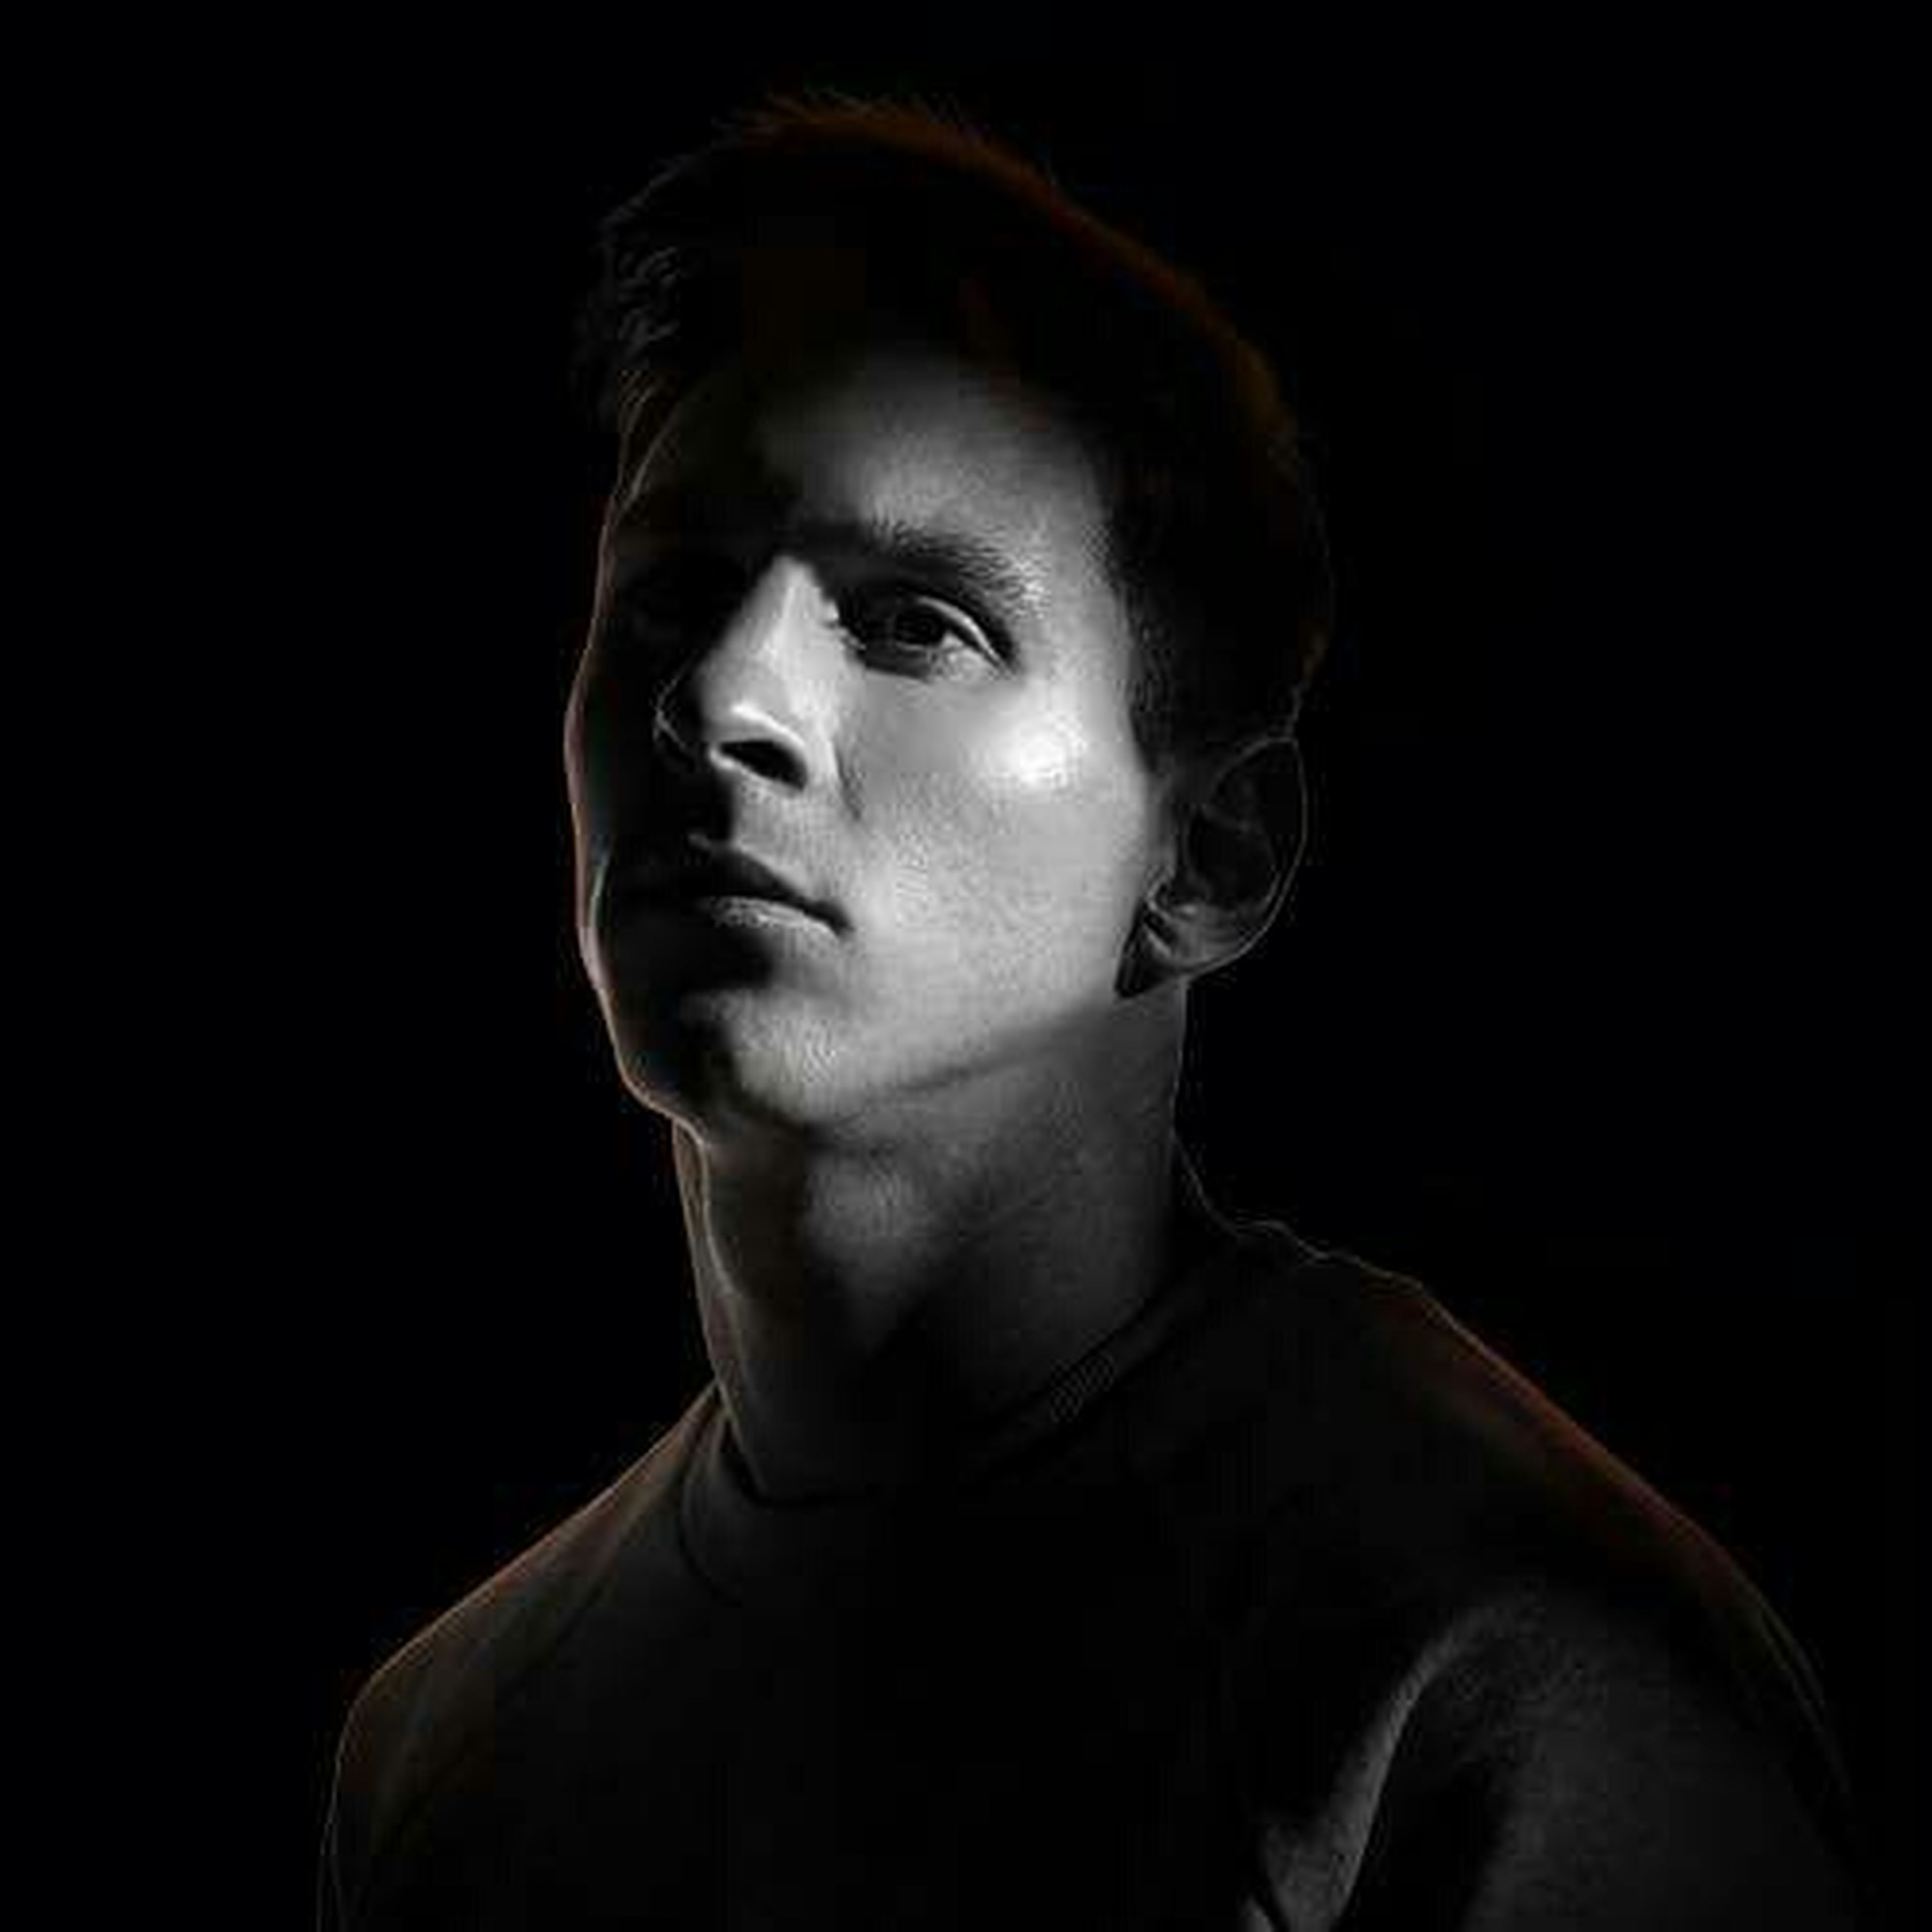 studio shot, black background, headshot, person, portrait, looking at camera, serious, young adult, front view, lifestyles, close-up, head and shoulders, human face, contemplation, copy space, indoors, young men